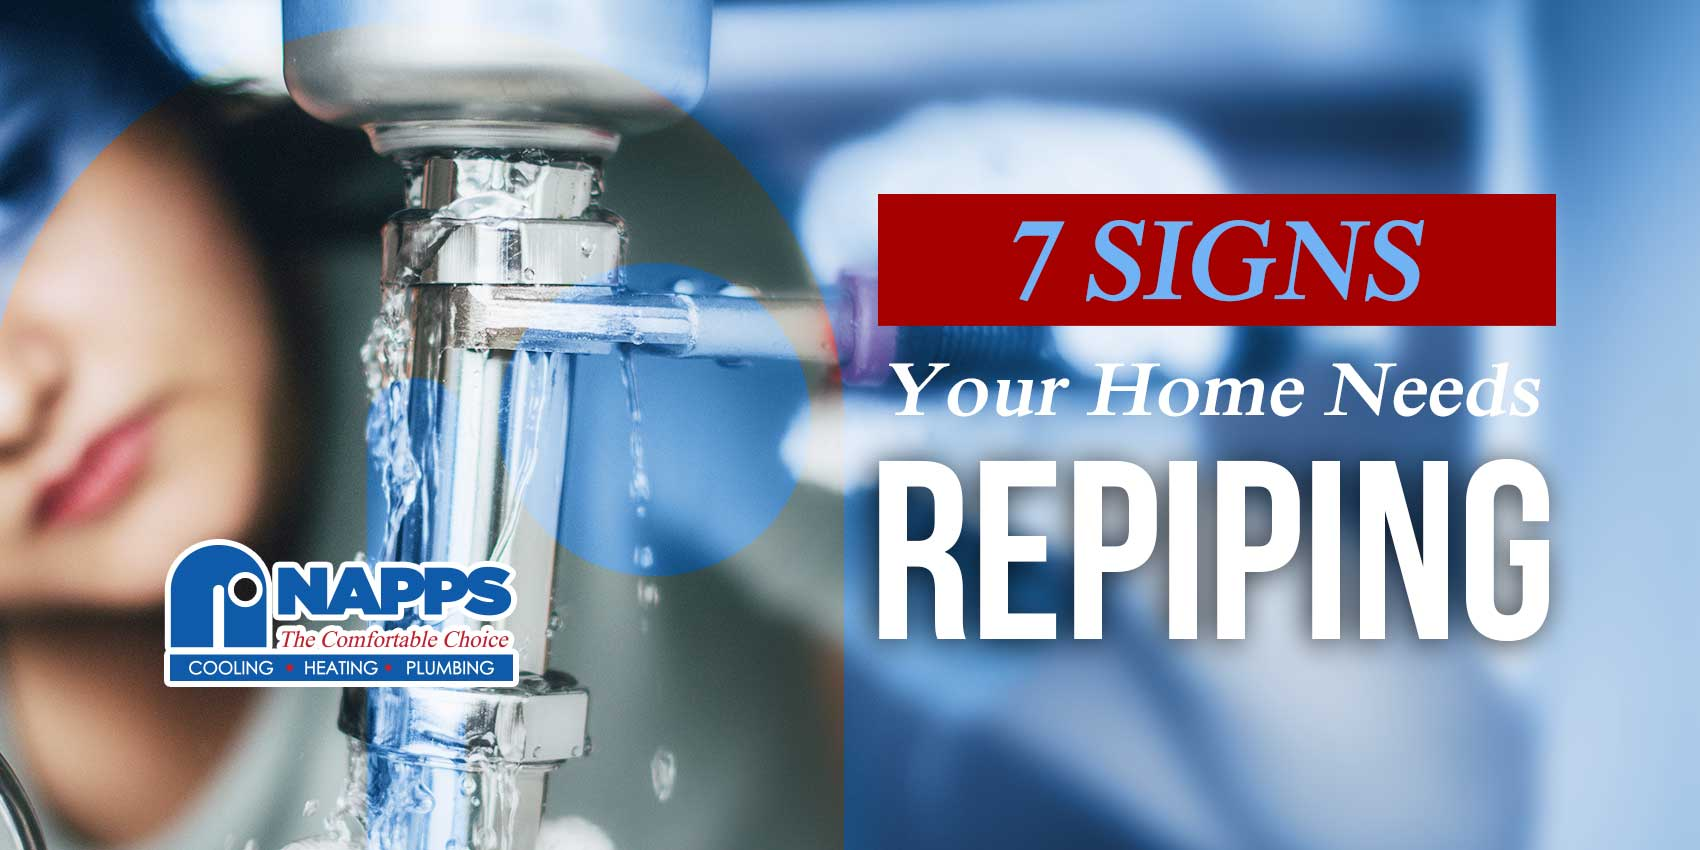 7 Signs Your Home Needs Repiping